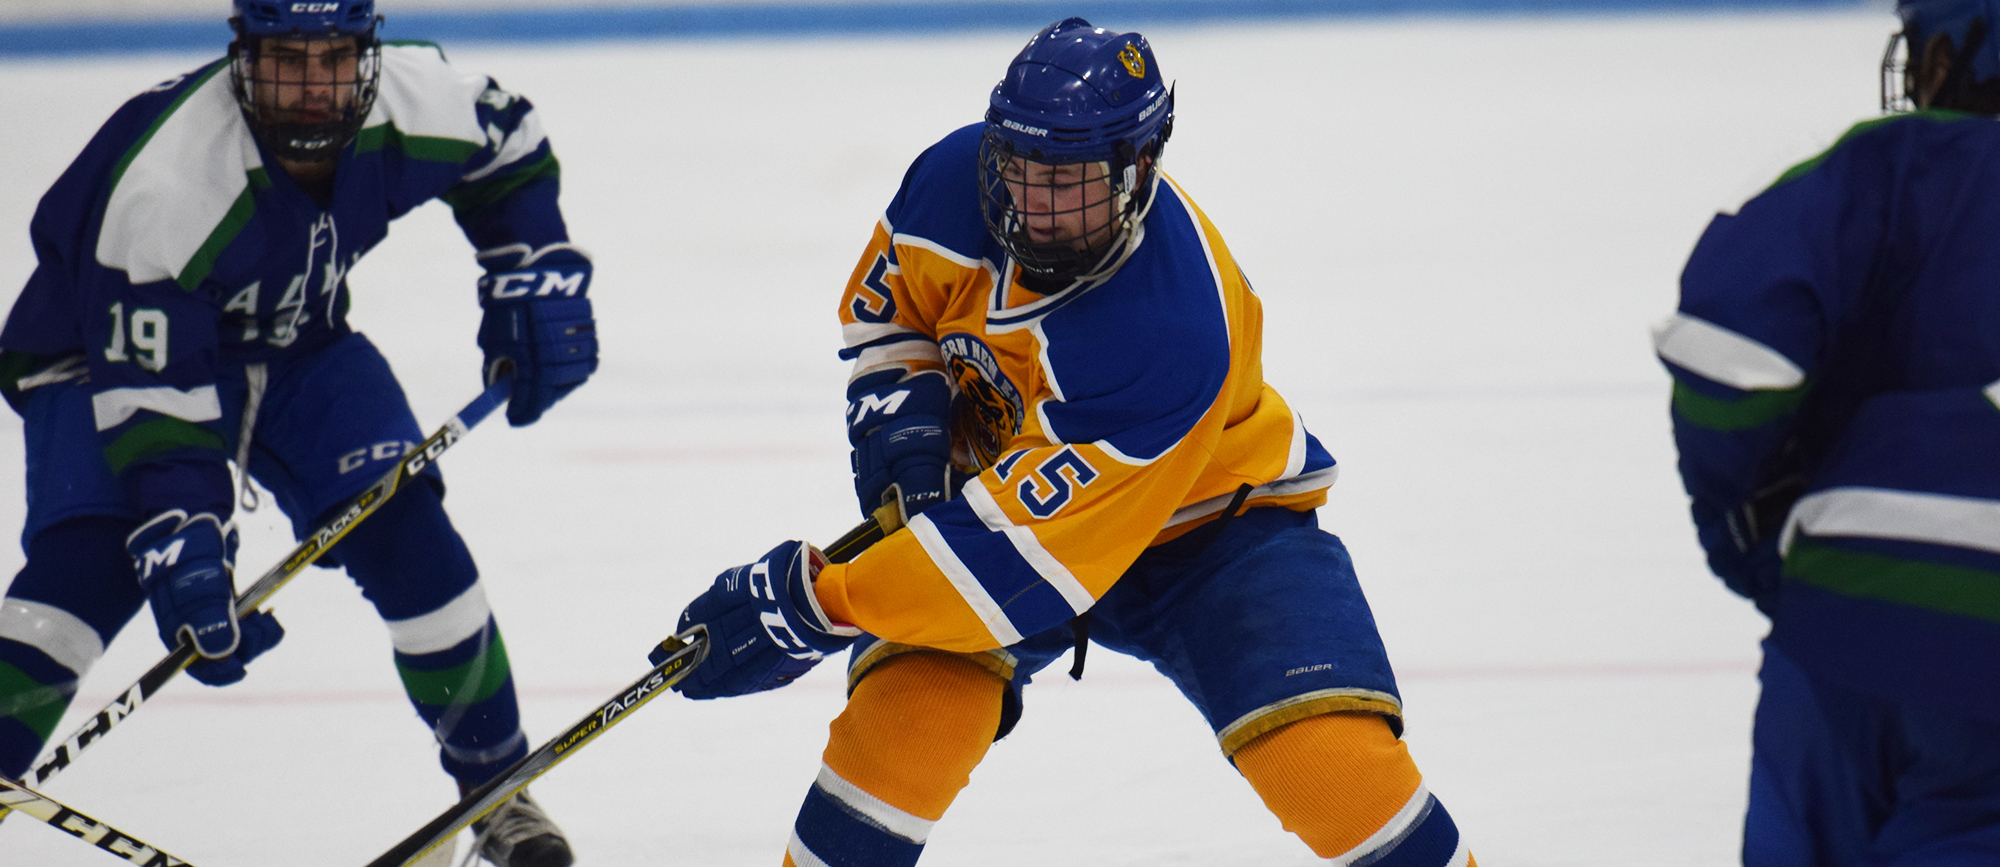 Junior Matt O'Dea scored his first goal of the season in Western New England's 3-2 loss at Salve Regina on Saturday (photo by Rachael Margossian).